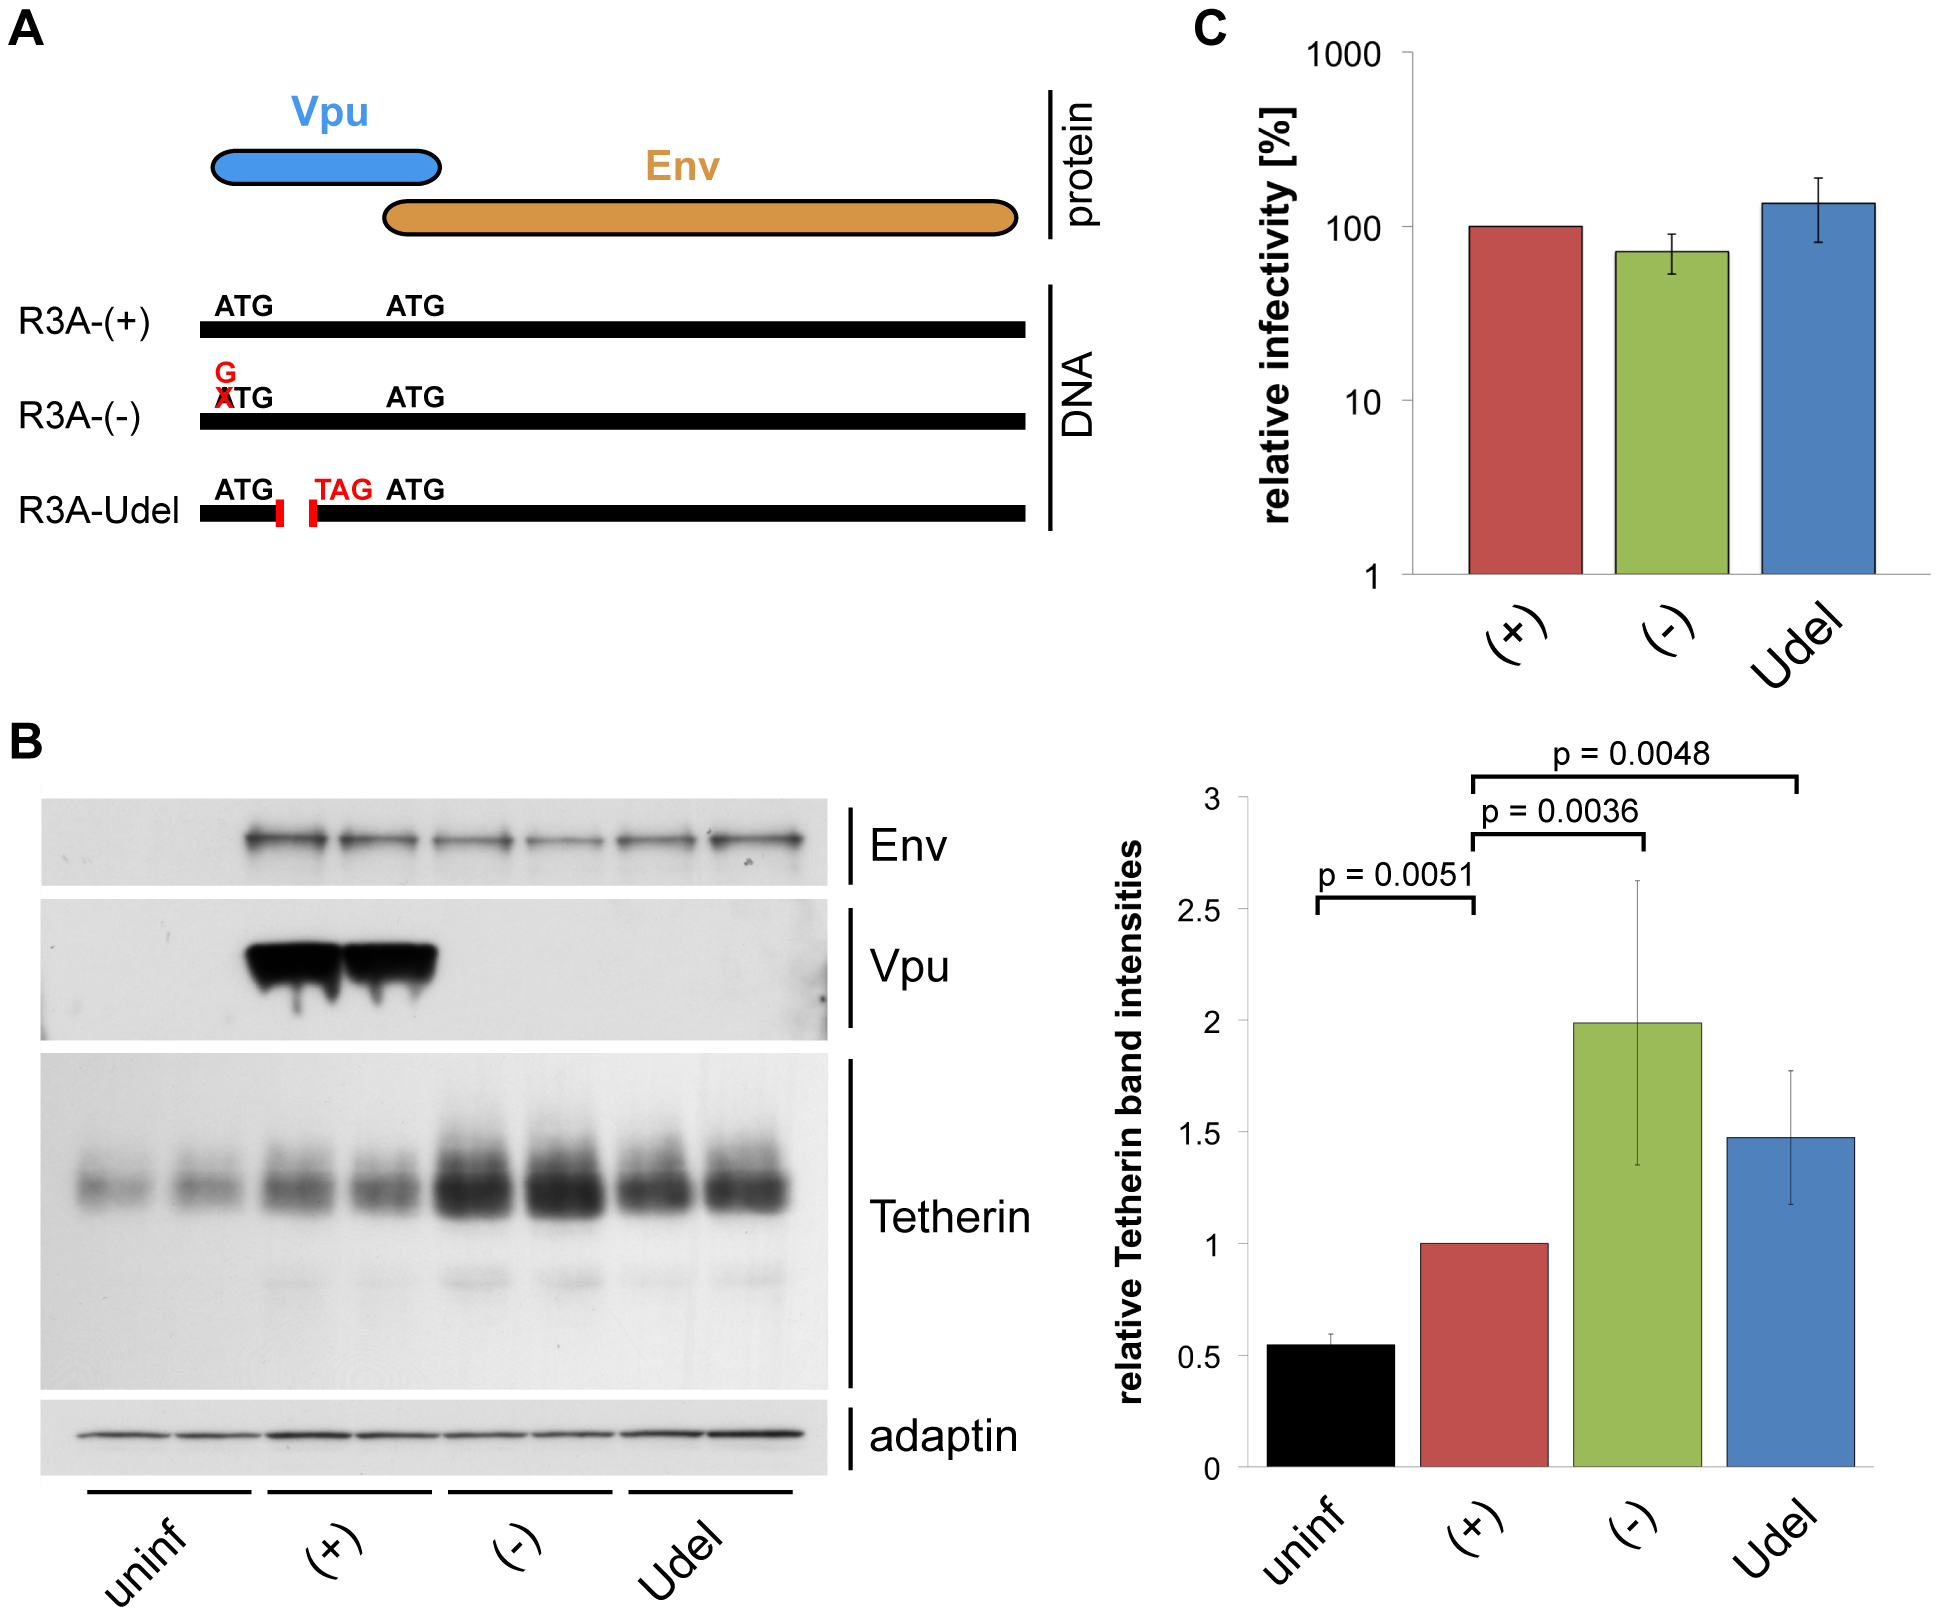 Vpu efficiently antagonises Tetherin in MDMs.